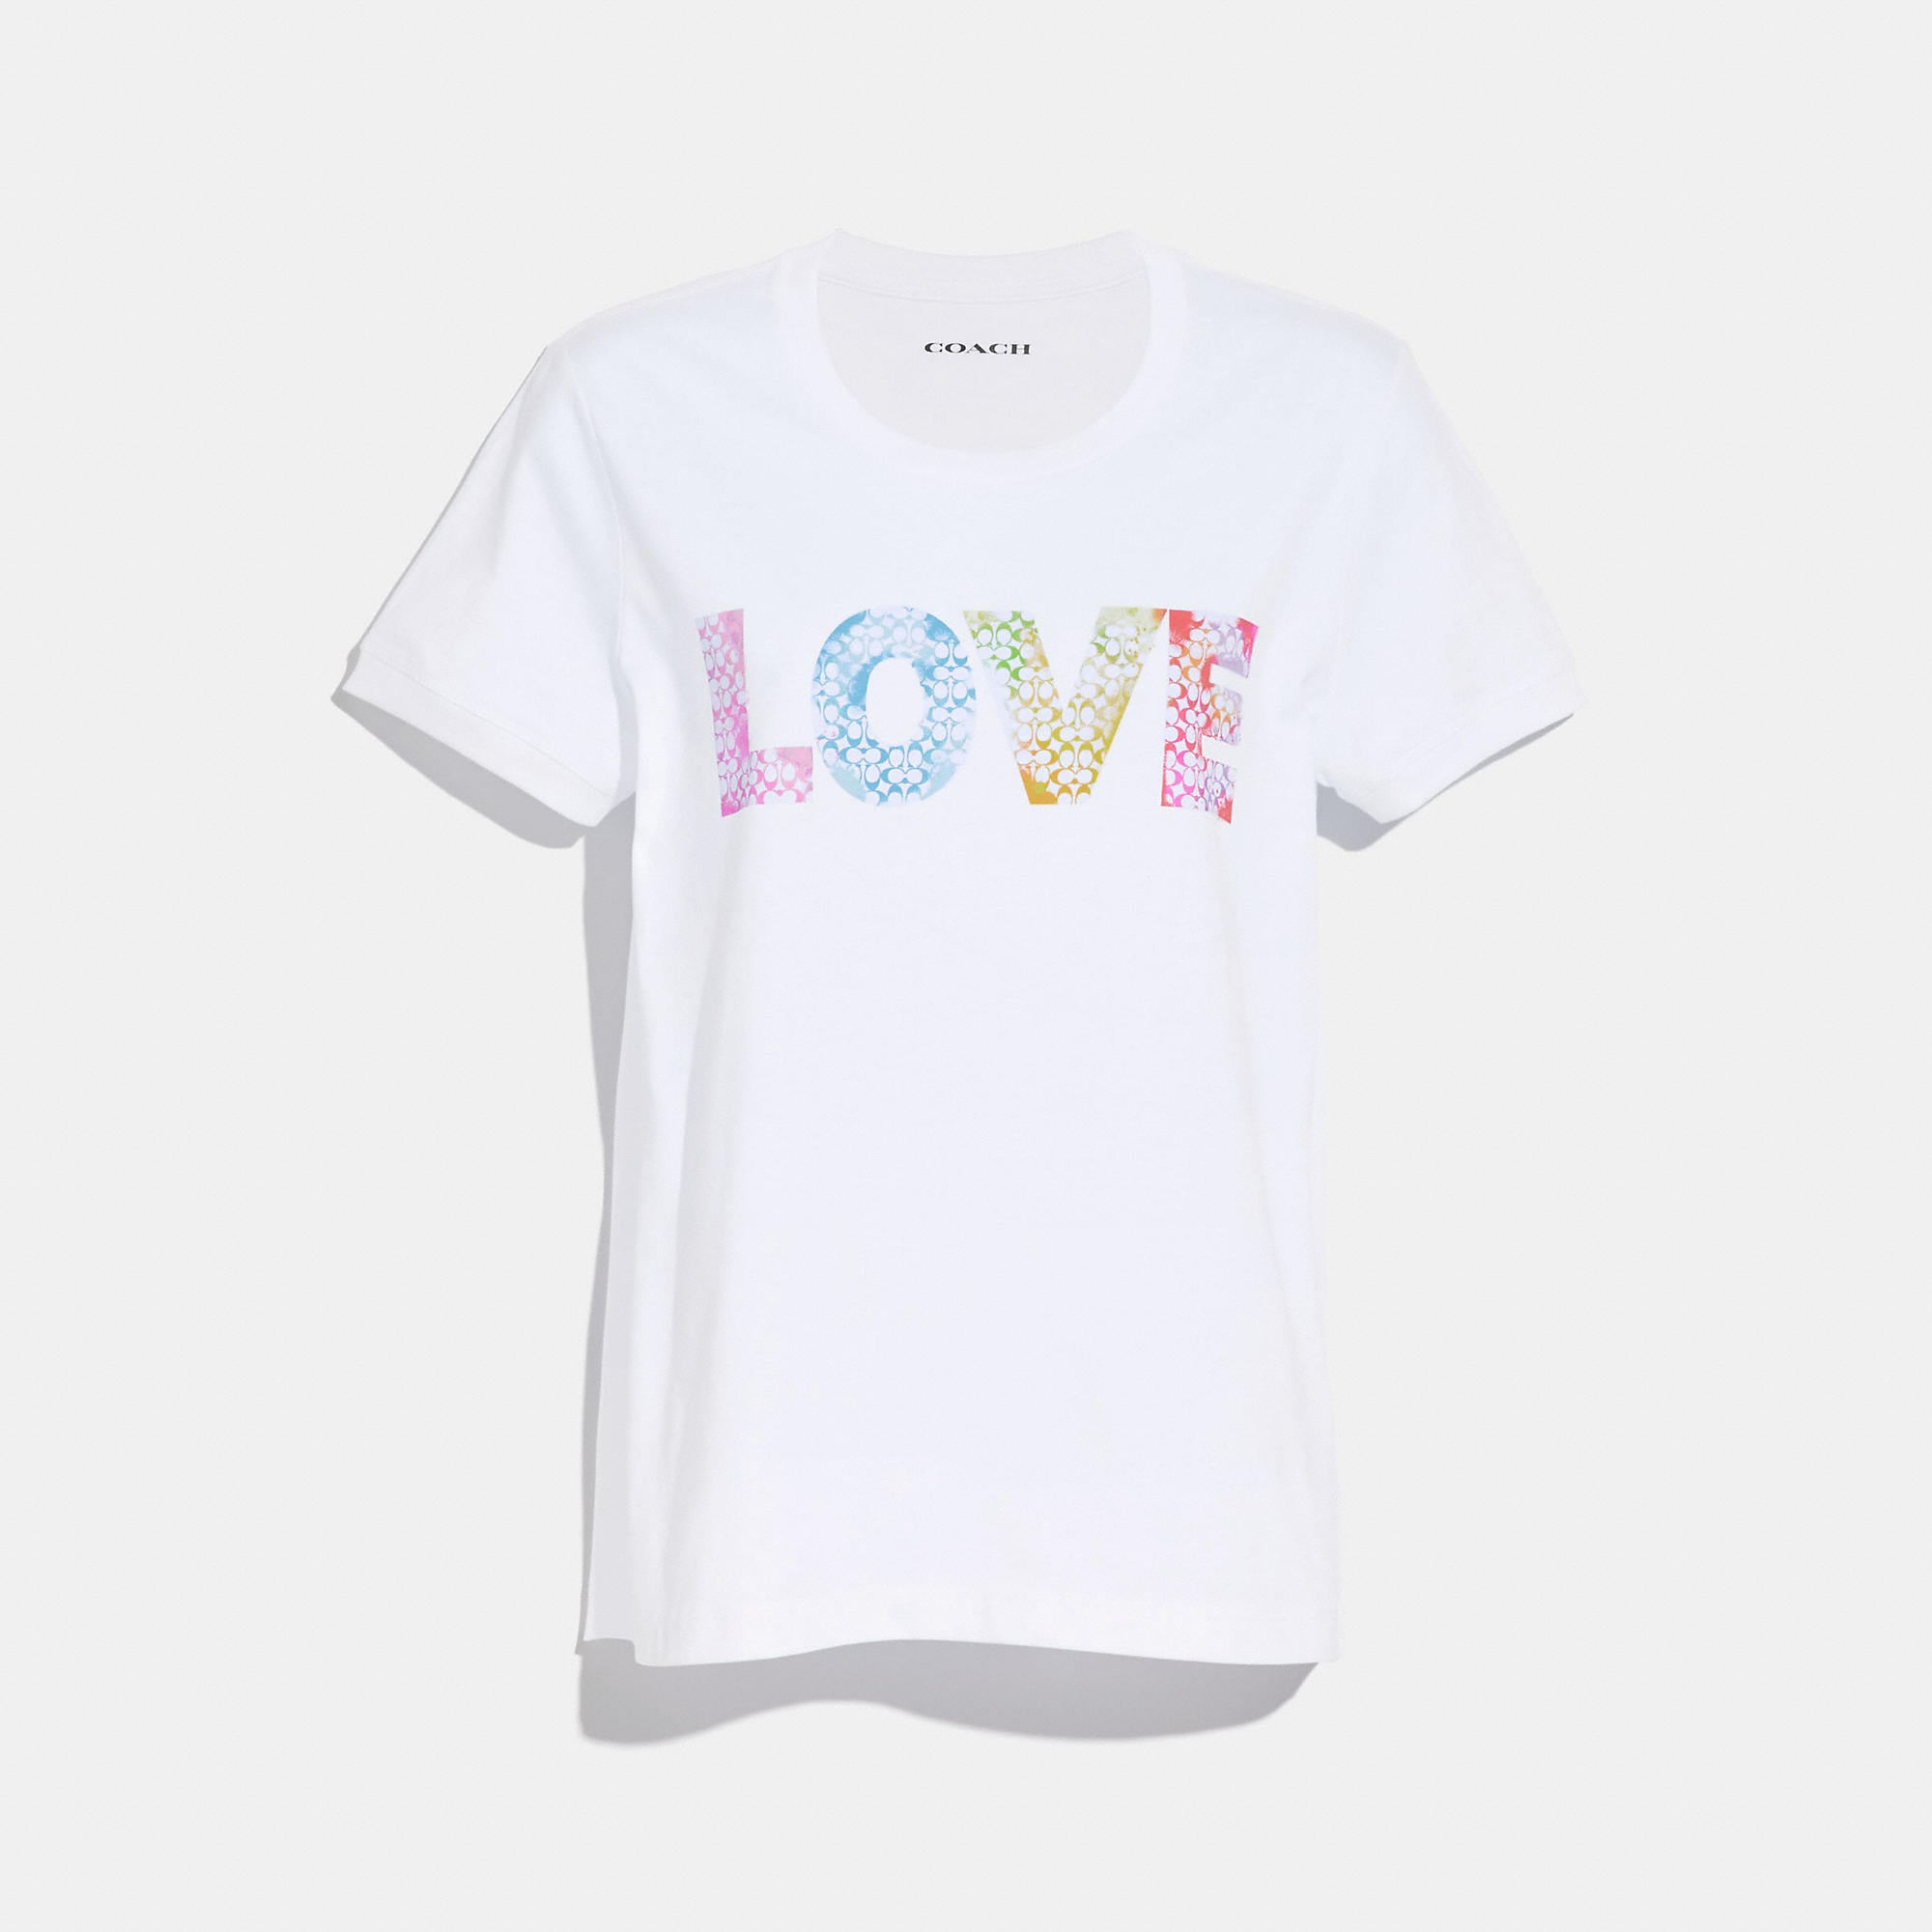 Our cotton tee features Jason Naylor s bright